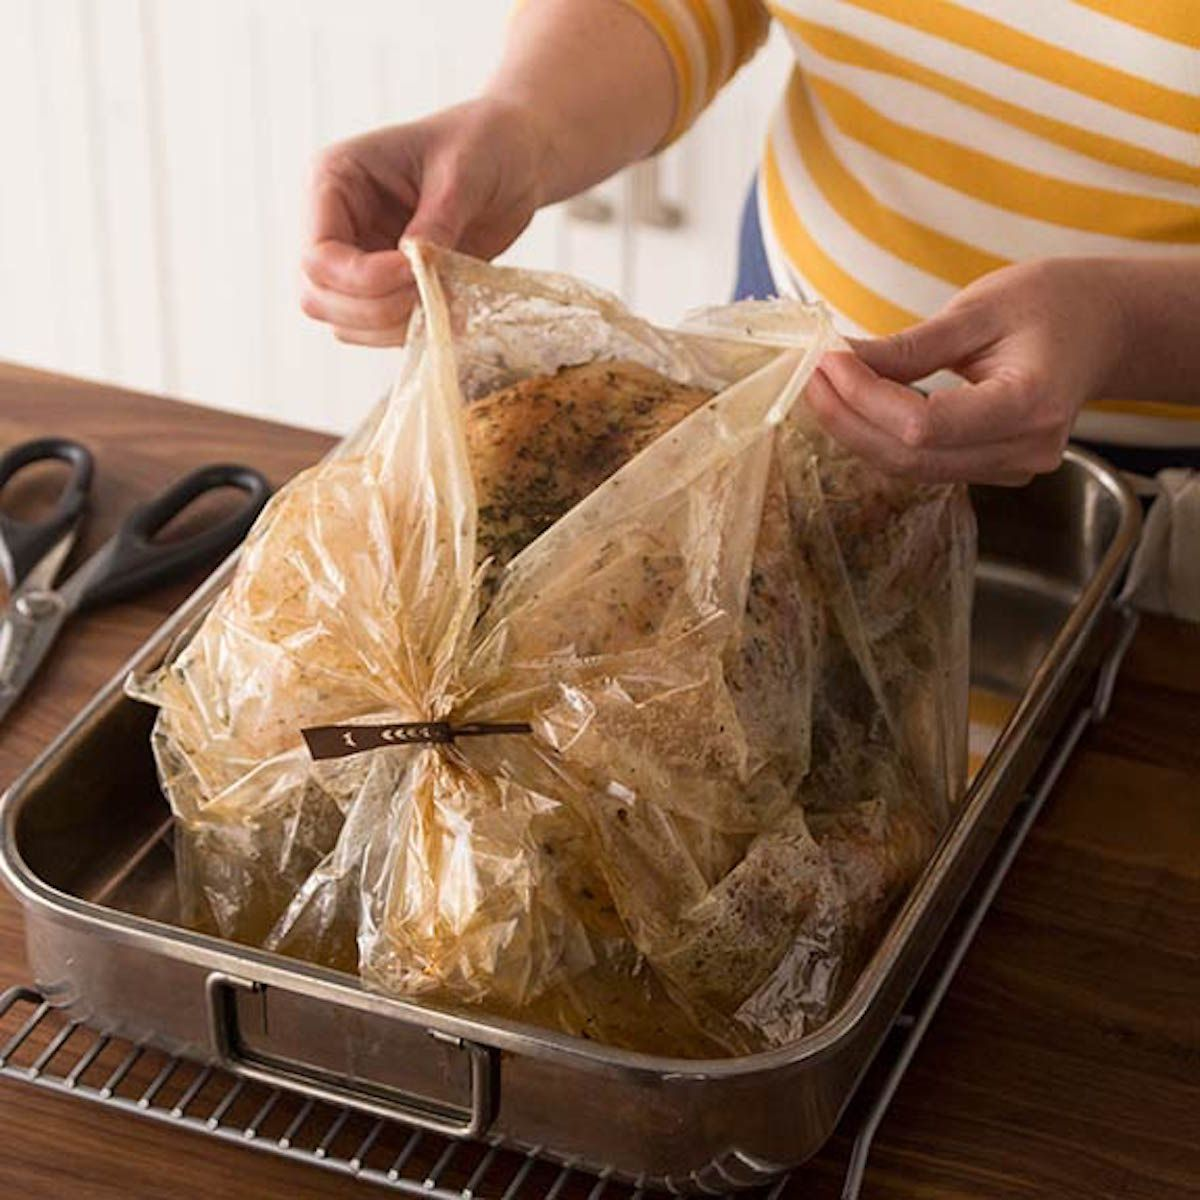 How To Cook Turkey In A Bag An Oven That Is